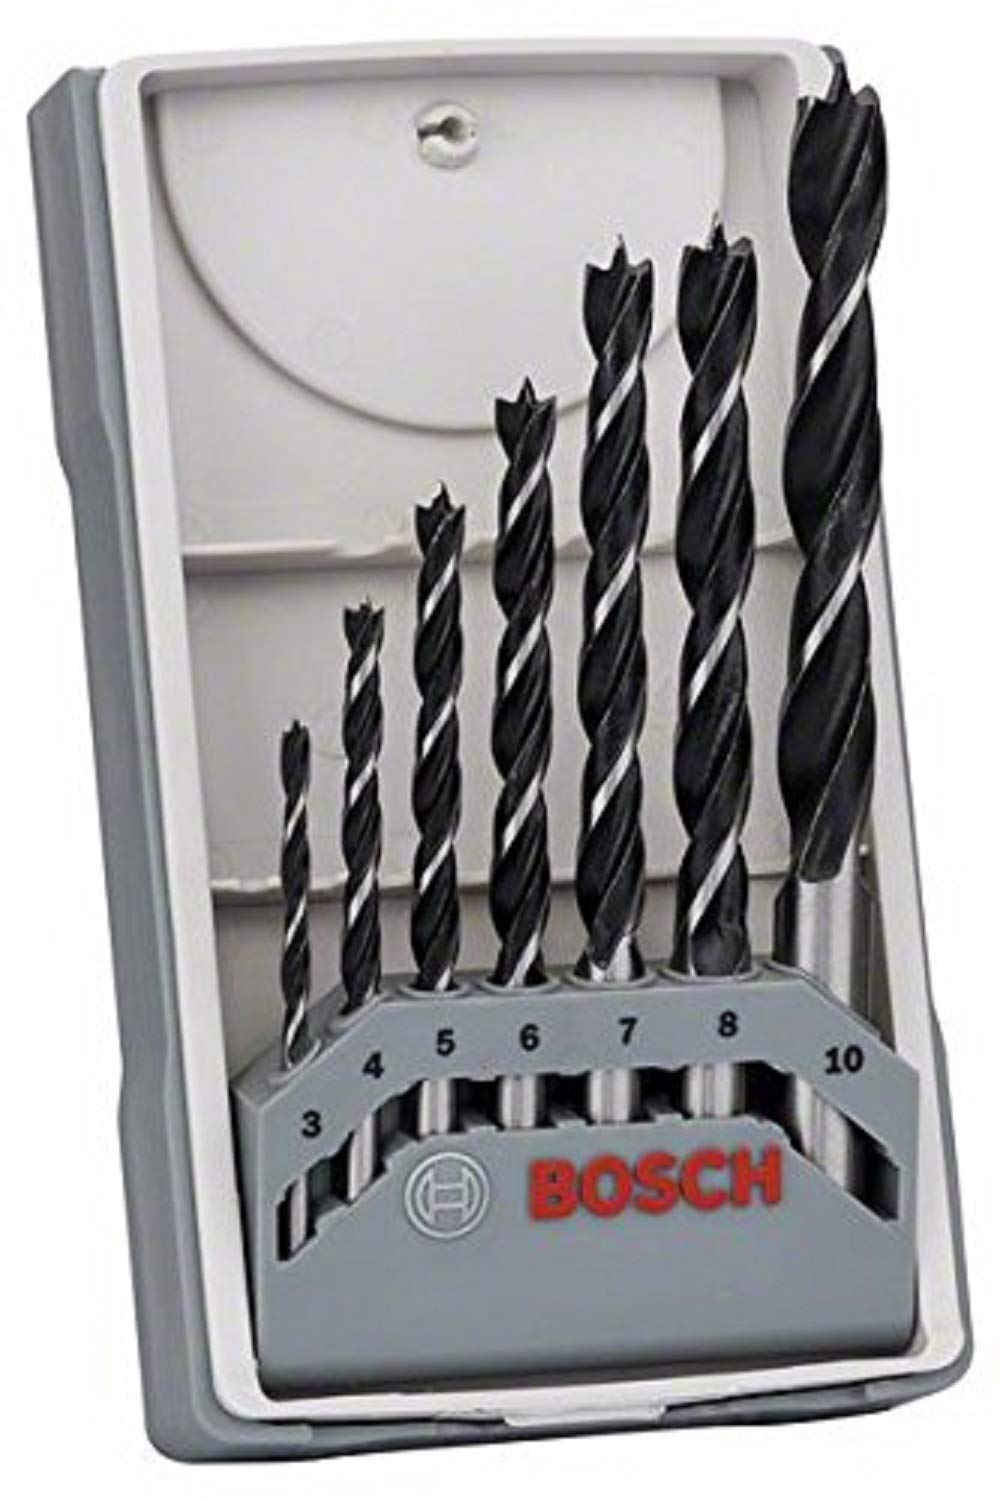 Bosch 2607017034 Professional 7-Piece Robust Line Brad Point Drill Bit Set (for Wood, Accessories for Drill Drivers) , Black/Silver , 45cm x 40cm x 25cm